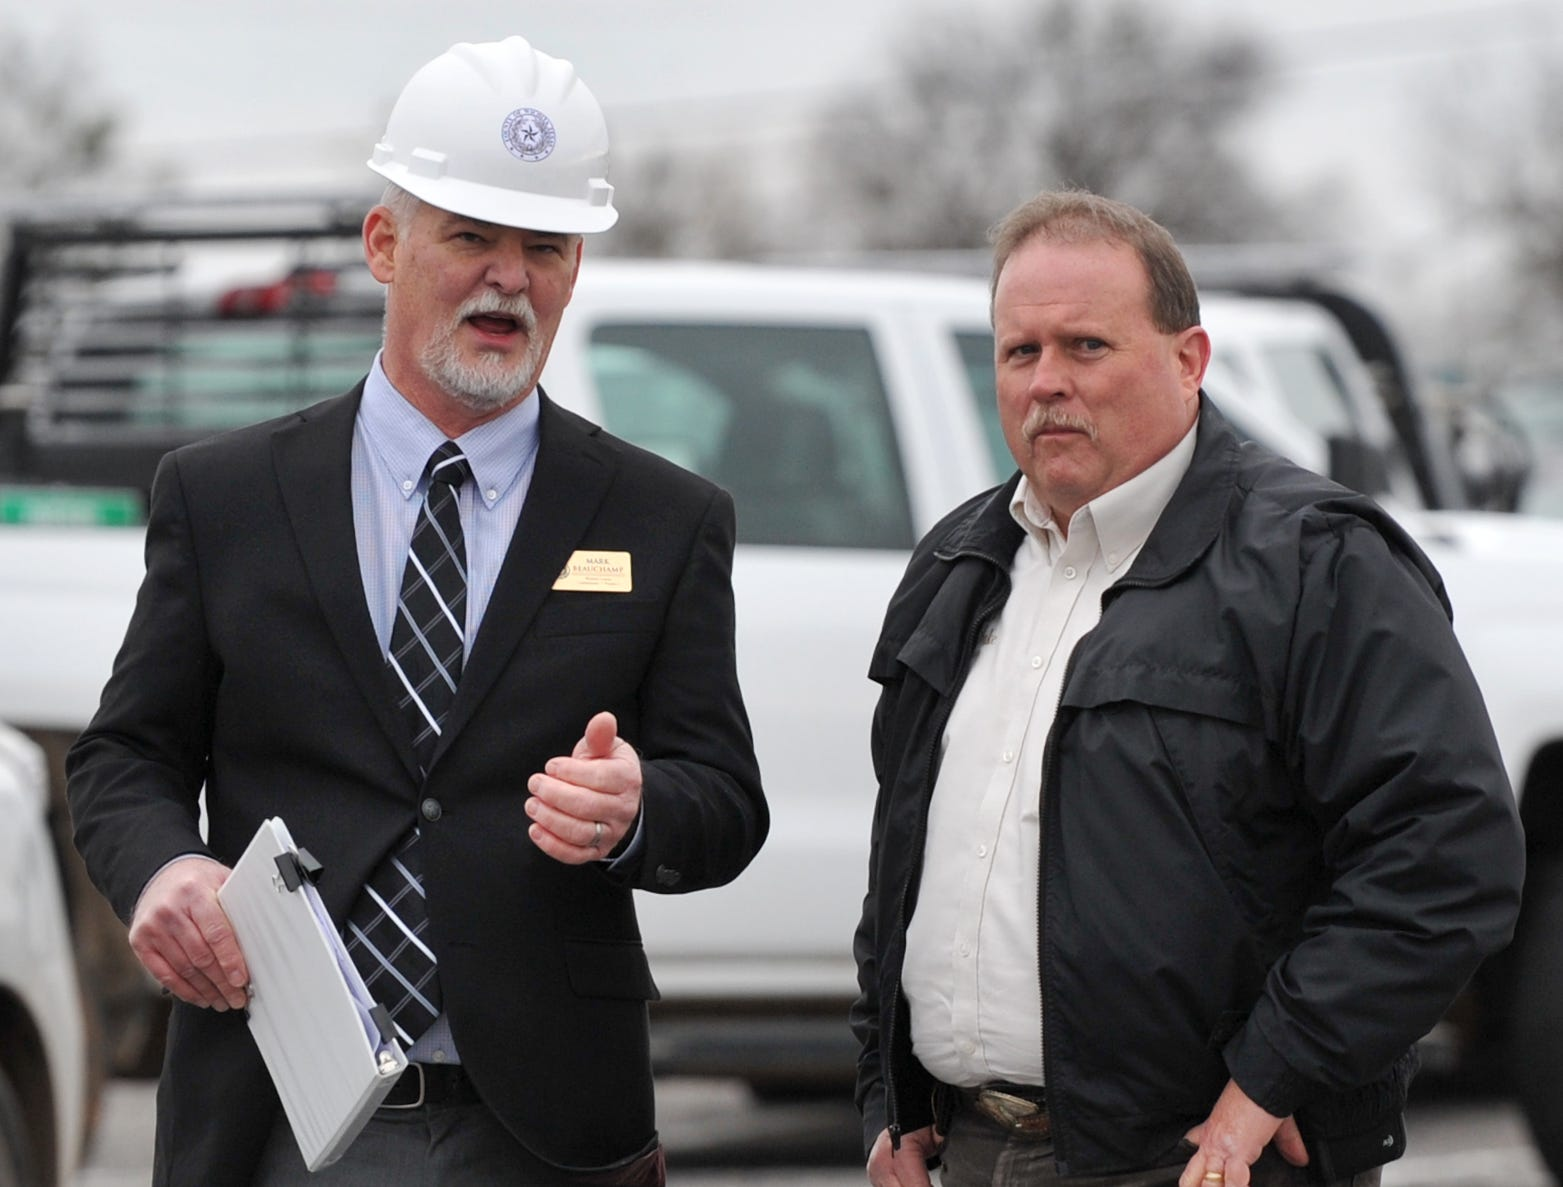 Wichita County Precinct 1 Commissioner, Mark Beachamp, left, and Wichita County Sheriff, David Duke chat before a groundbreaking ceremony held for the new law enforcement center that will be constructed next to the Sprague Annex.